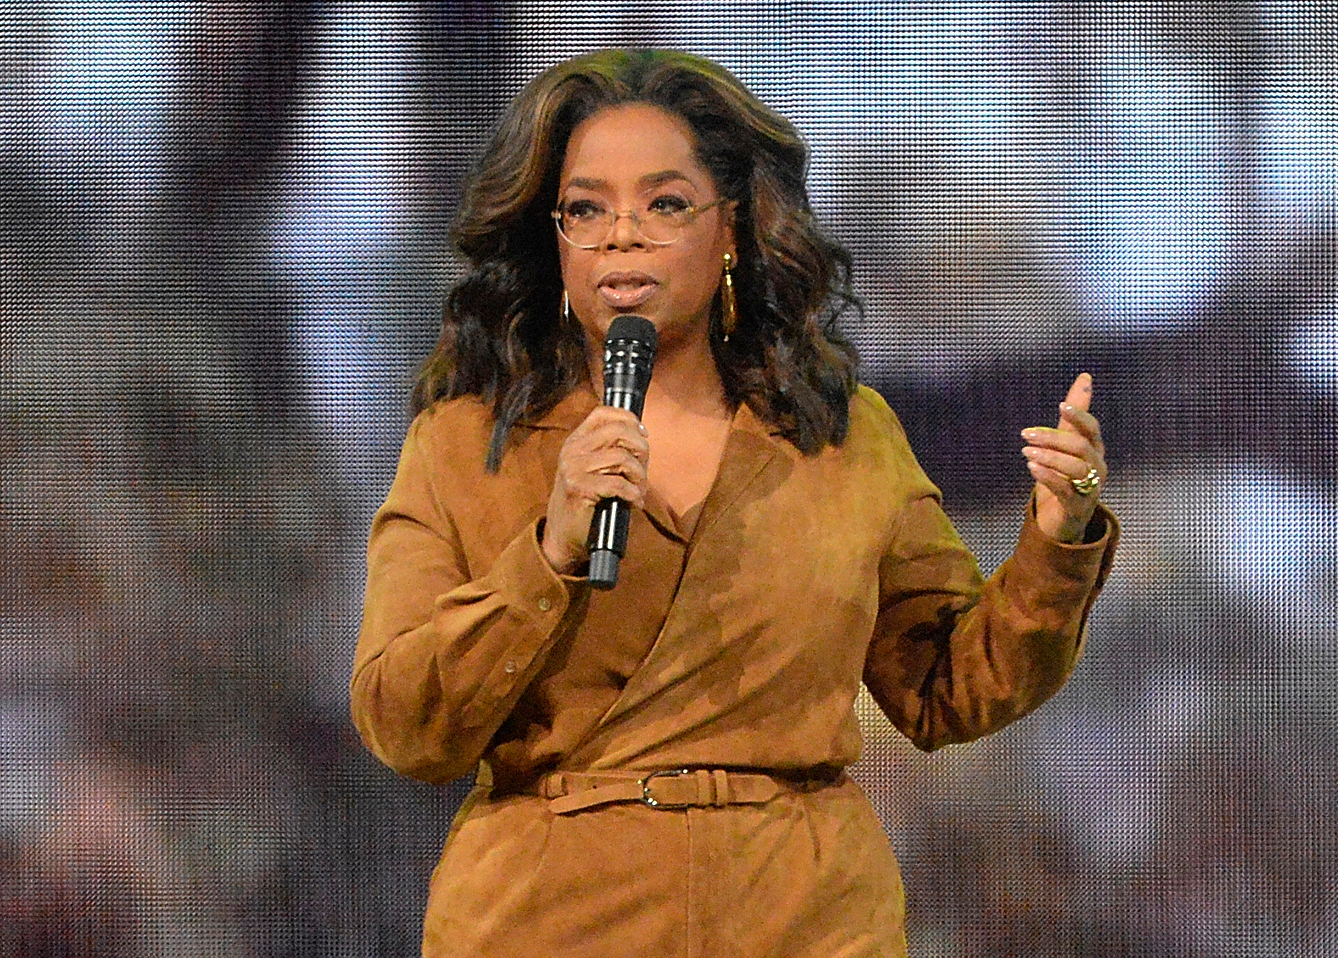 This Week Oprah Winfrey Hosting a Town Hall on Race with 2 Georgia Leaders